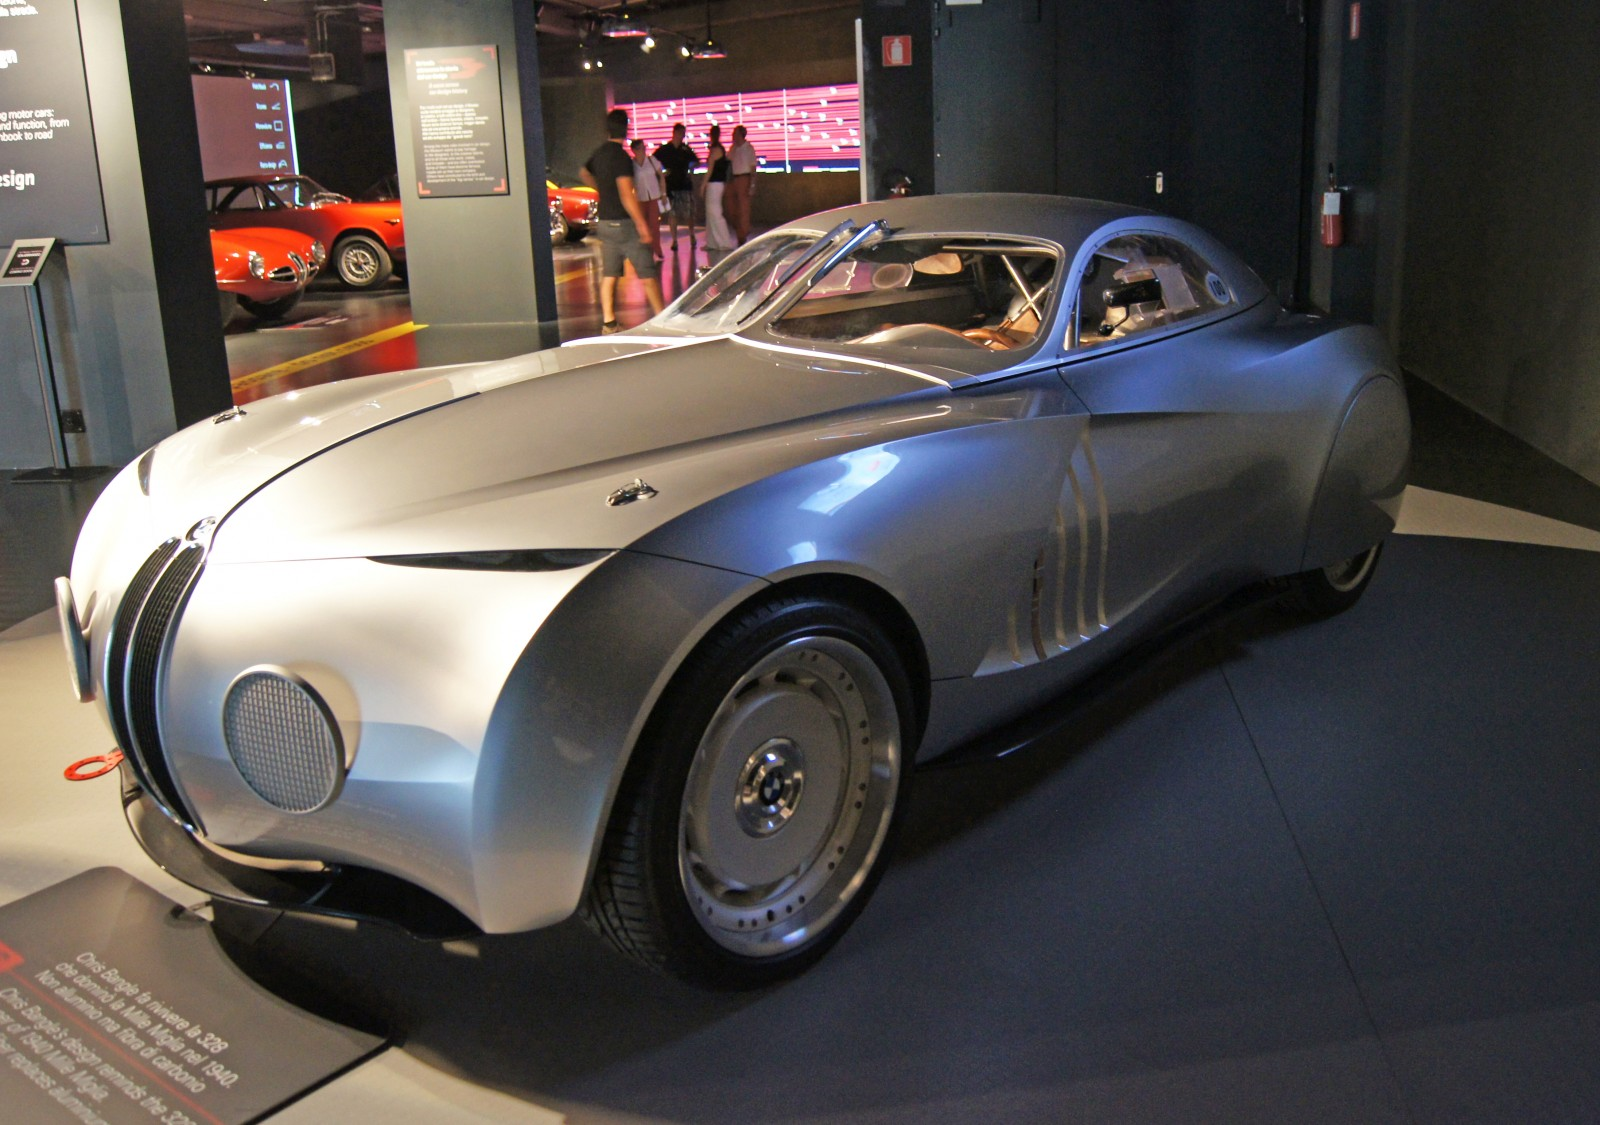 2009 BMW Mille Miglia Coupe Concept - Car Pictures